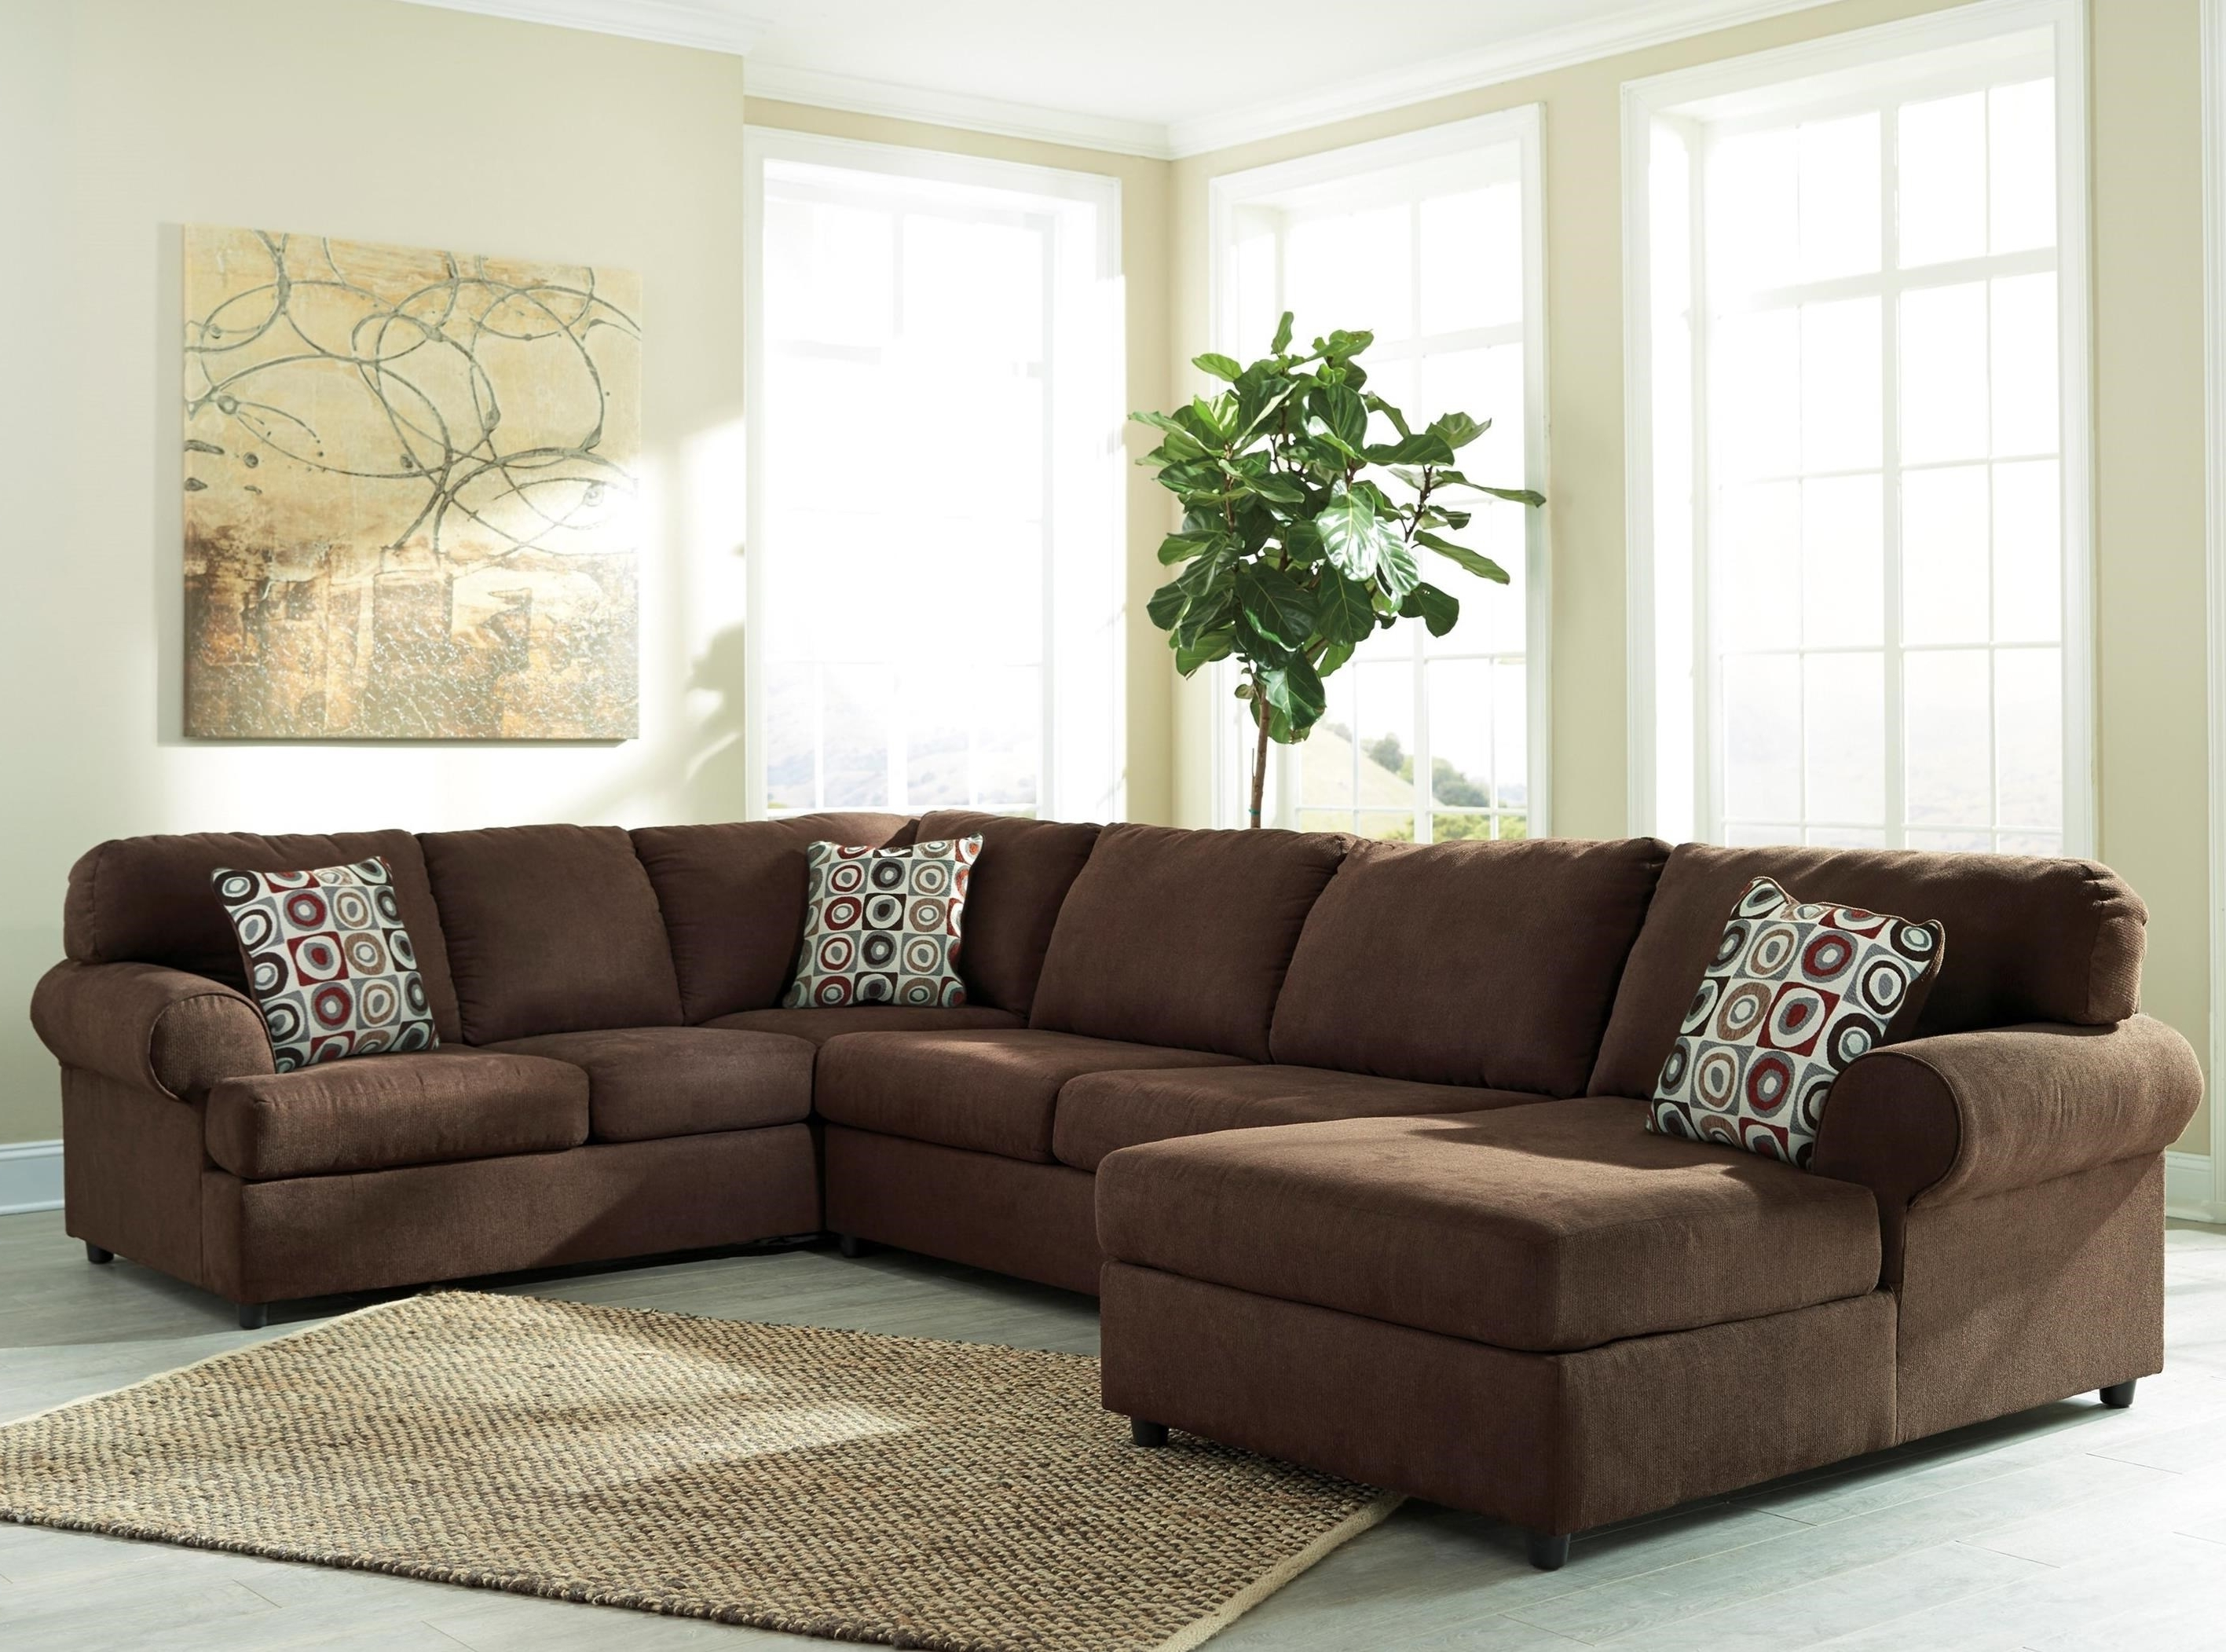 East Bay Sectional Sofas Throughout Newest Signature Designashley Jayceon 3 Piece Sectional With Left (View 9 of 15)